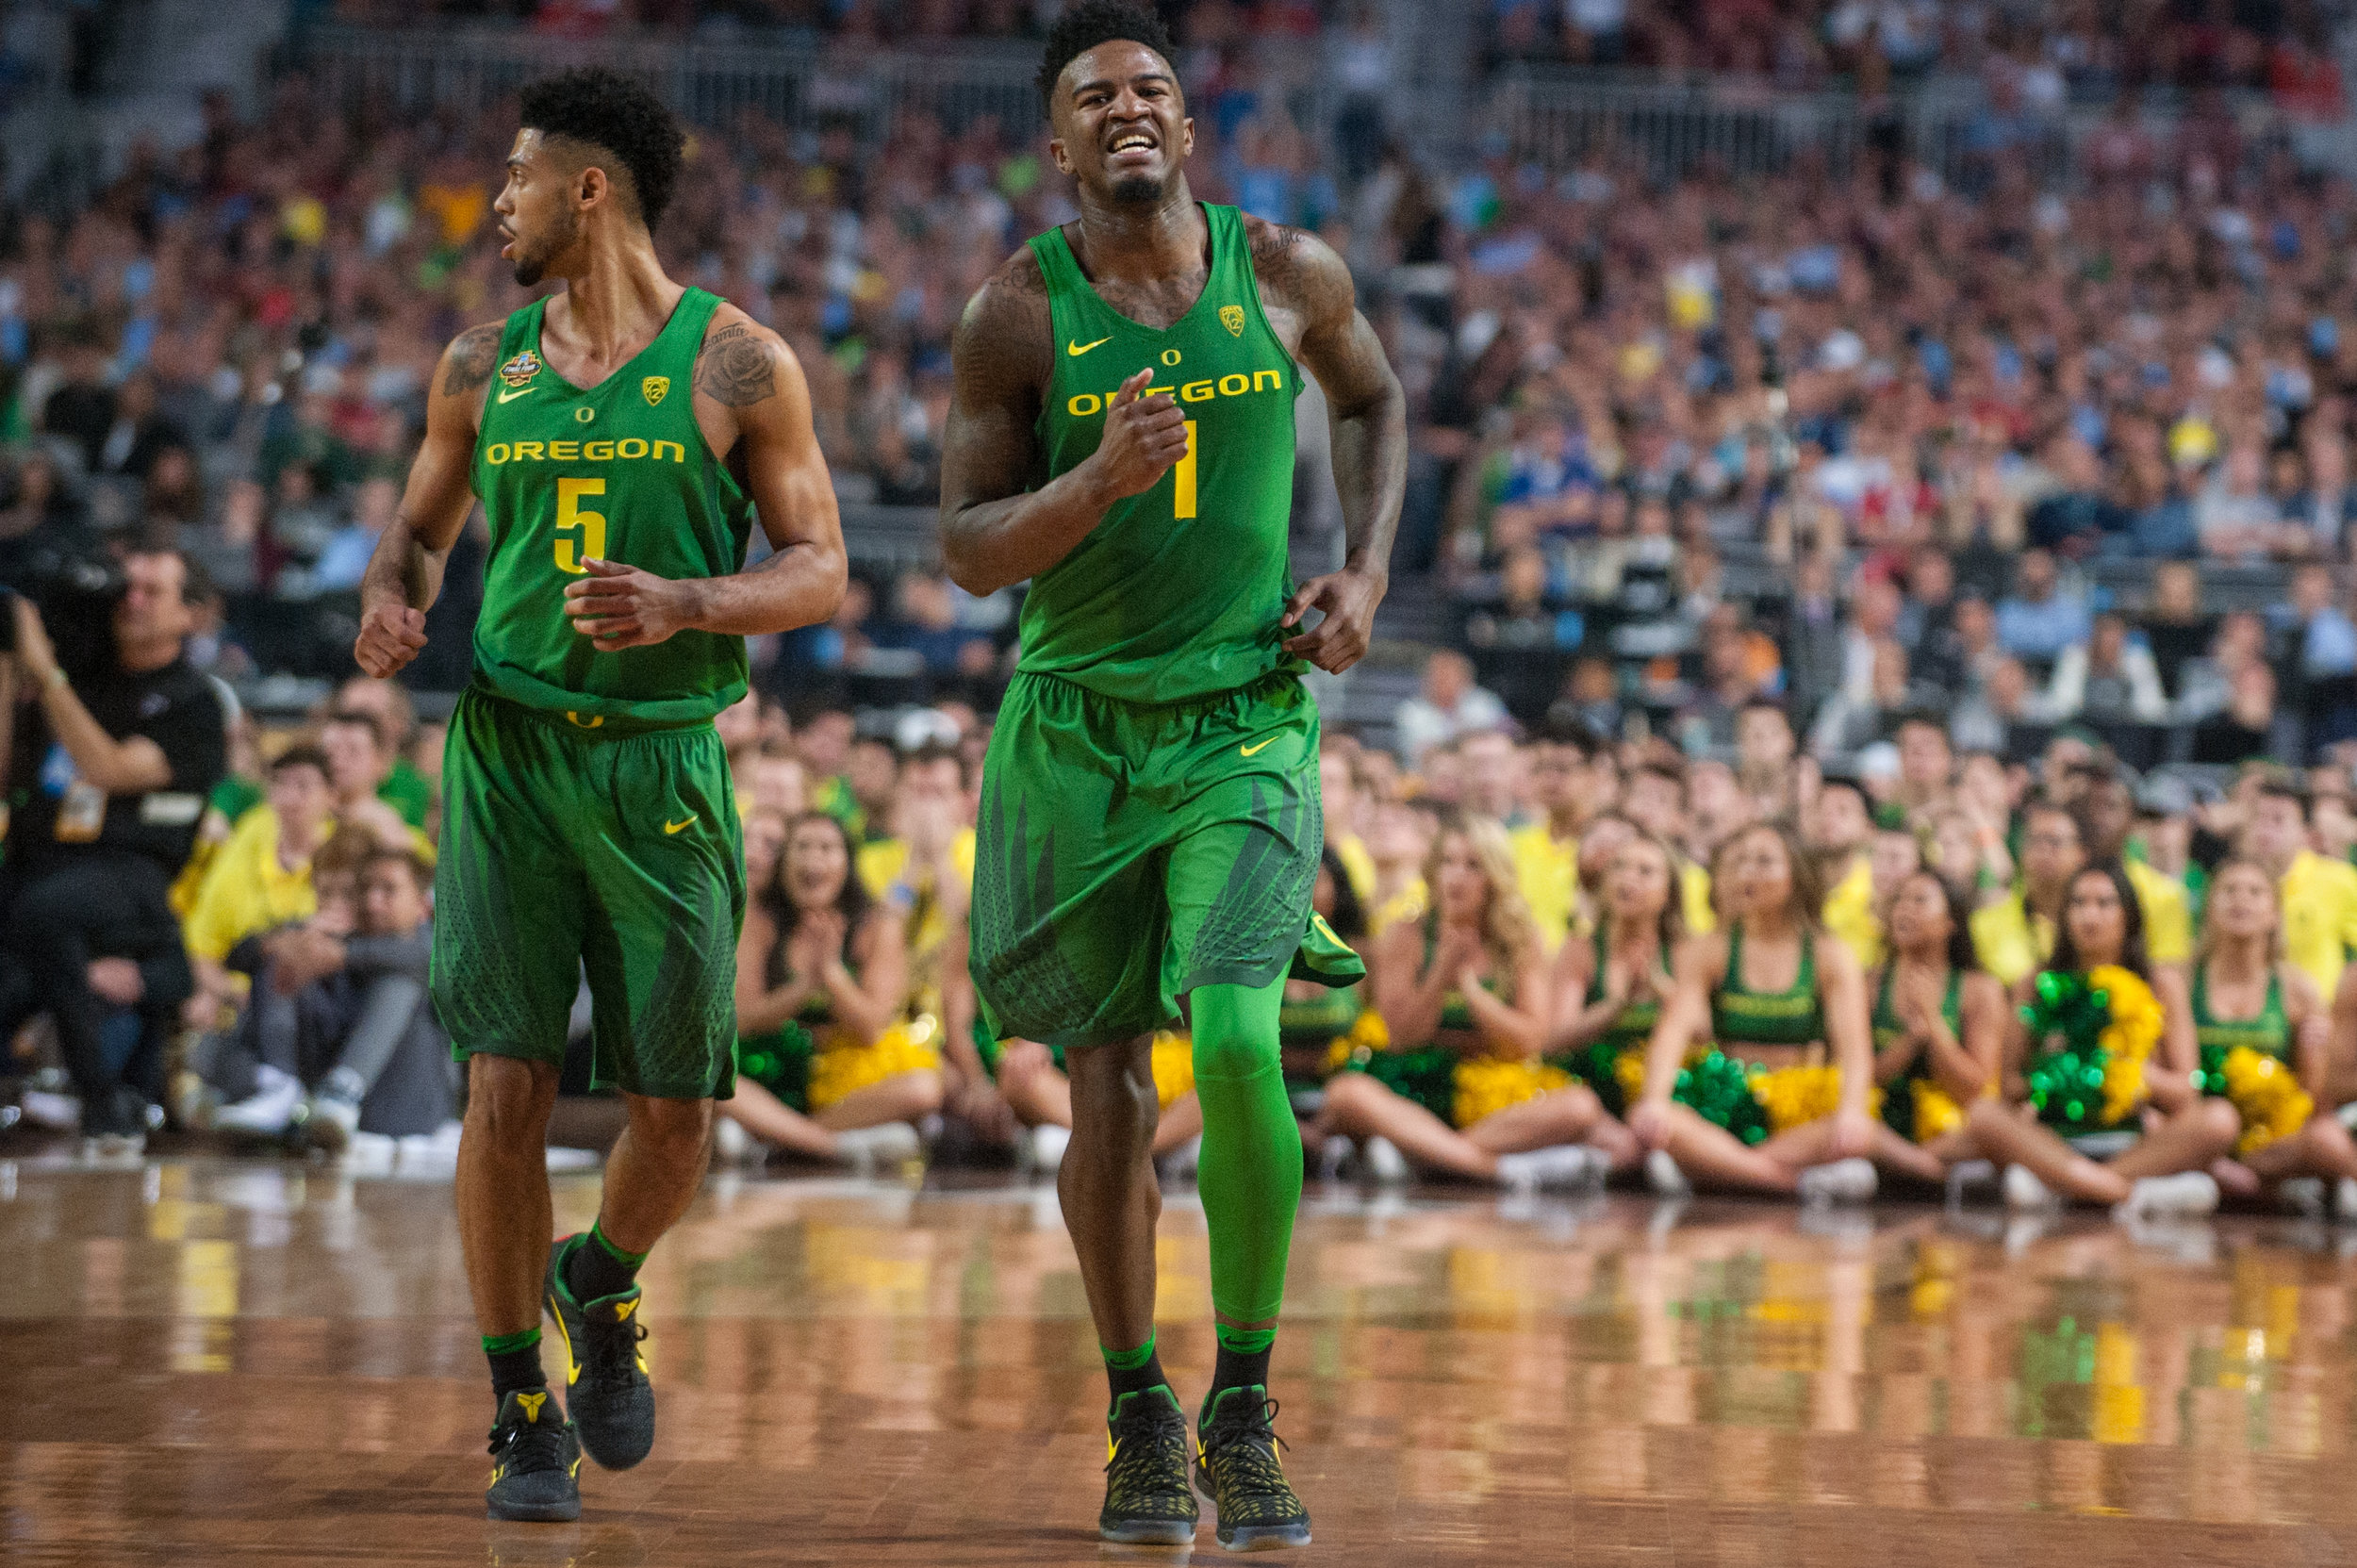 17.03.31.emg.an.final.four.oregon.vs.north.carolina-27.jpg